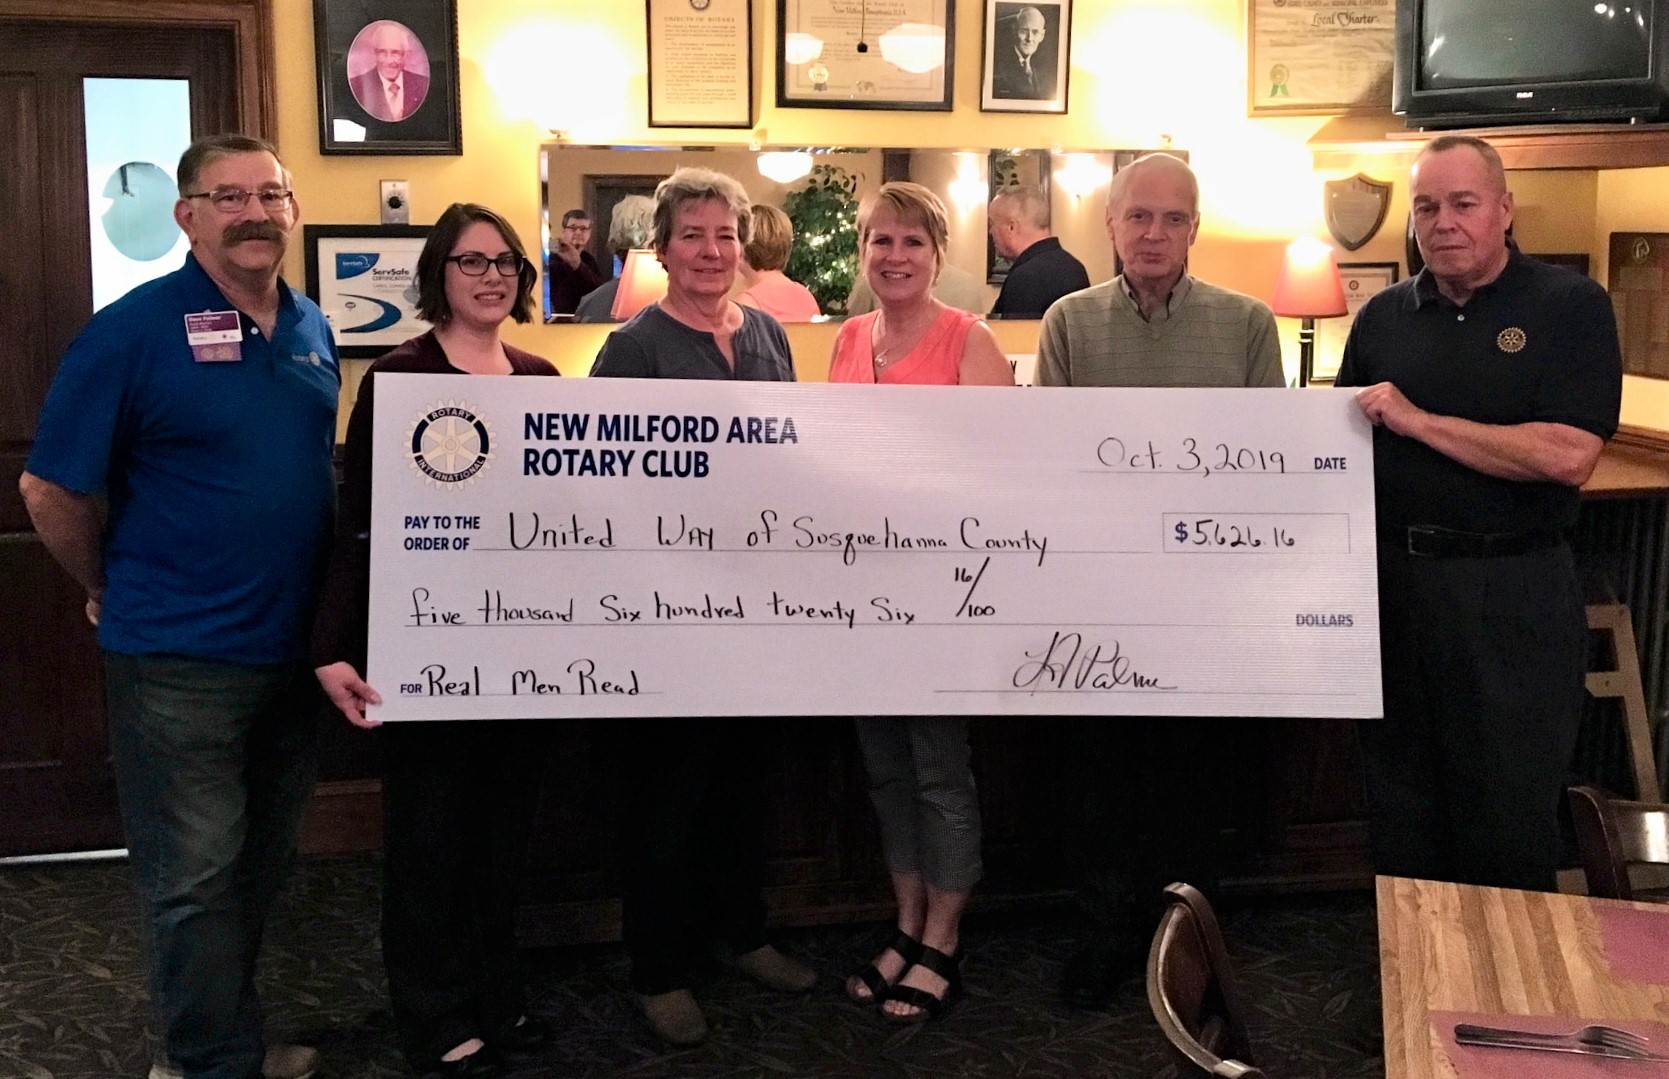 New Milford Area Rotary Supports United Way's Real Men Read Program